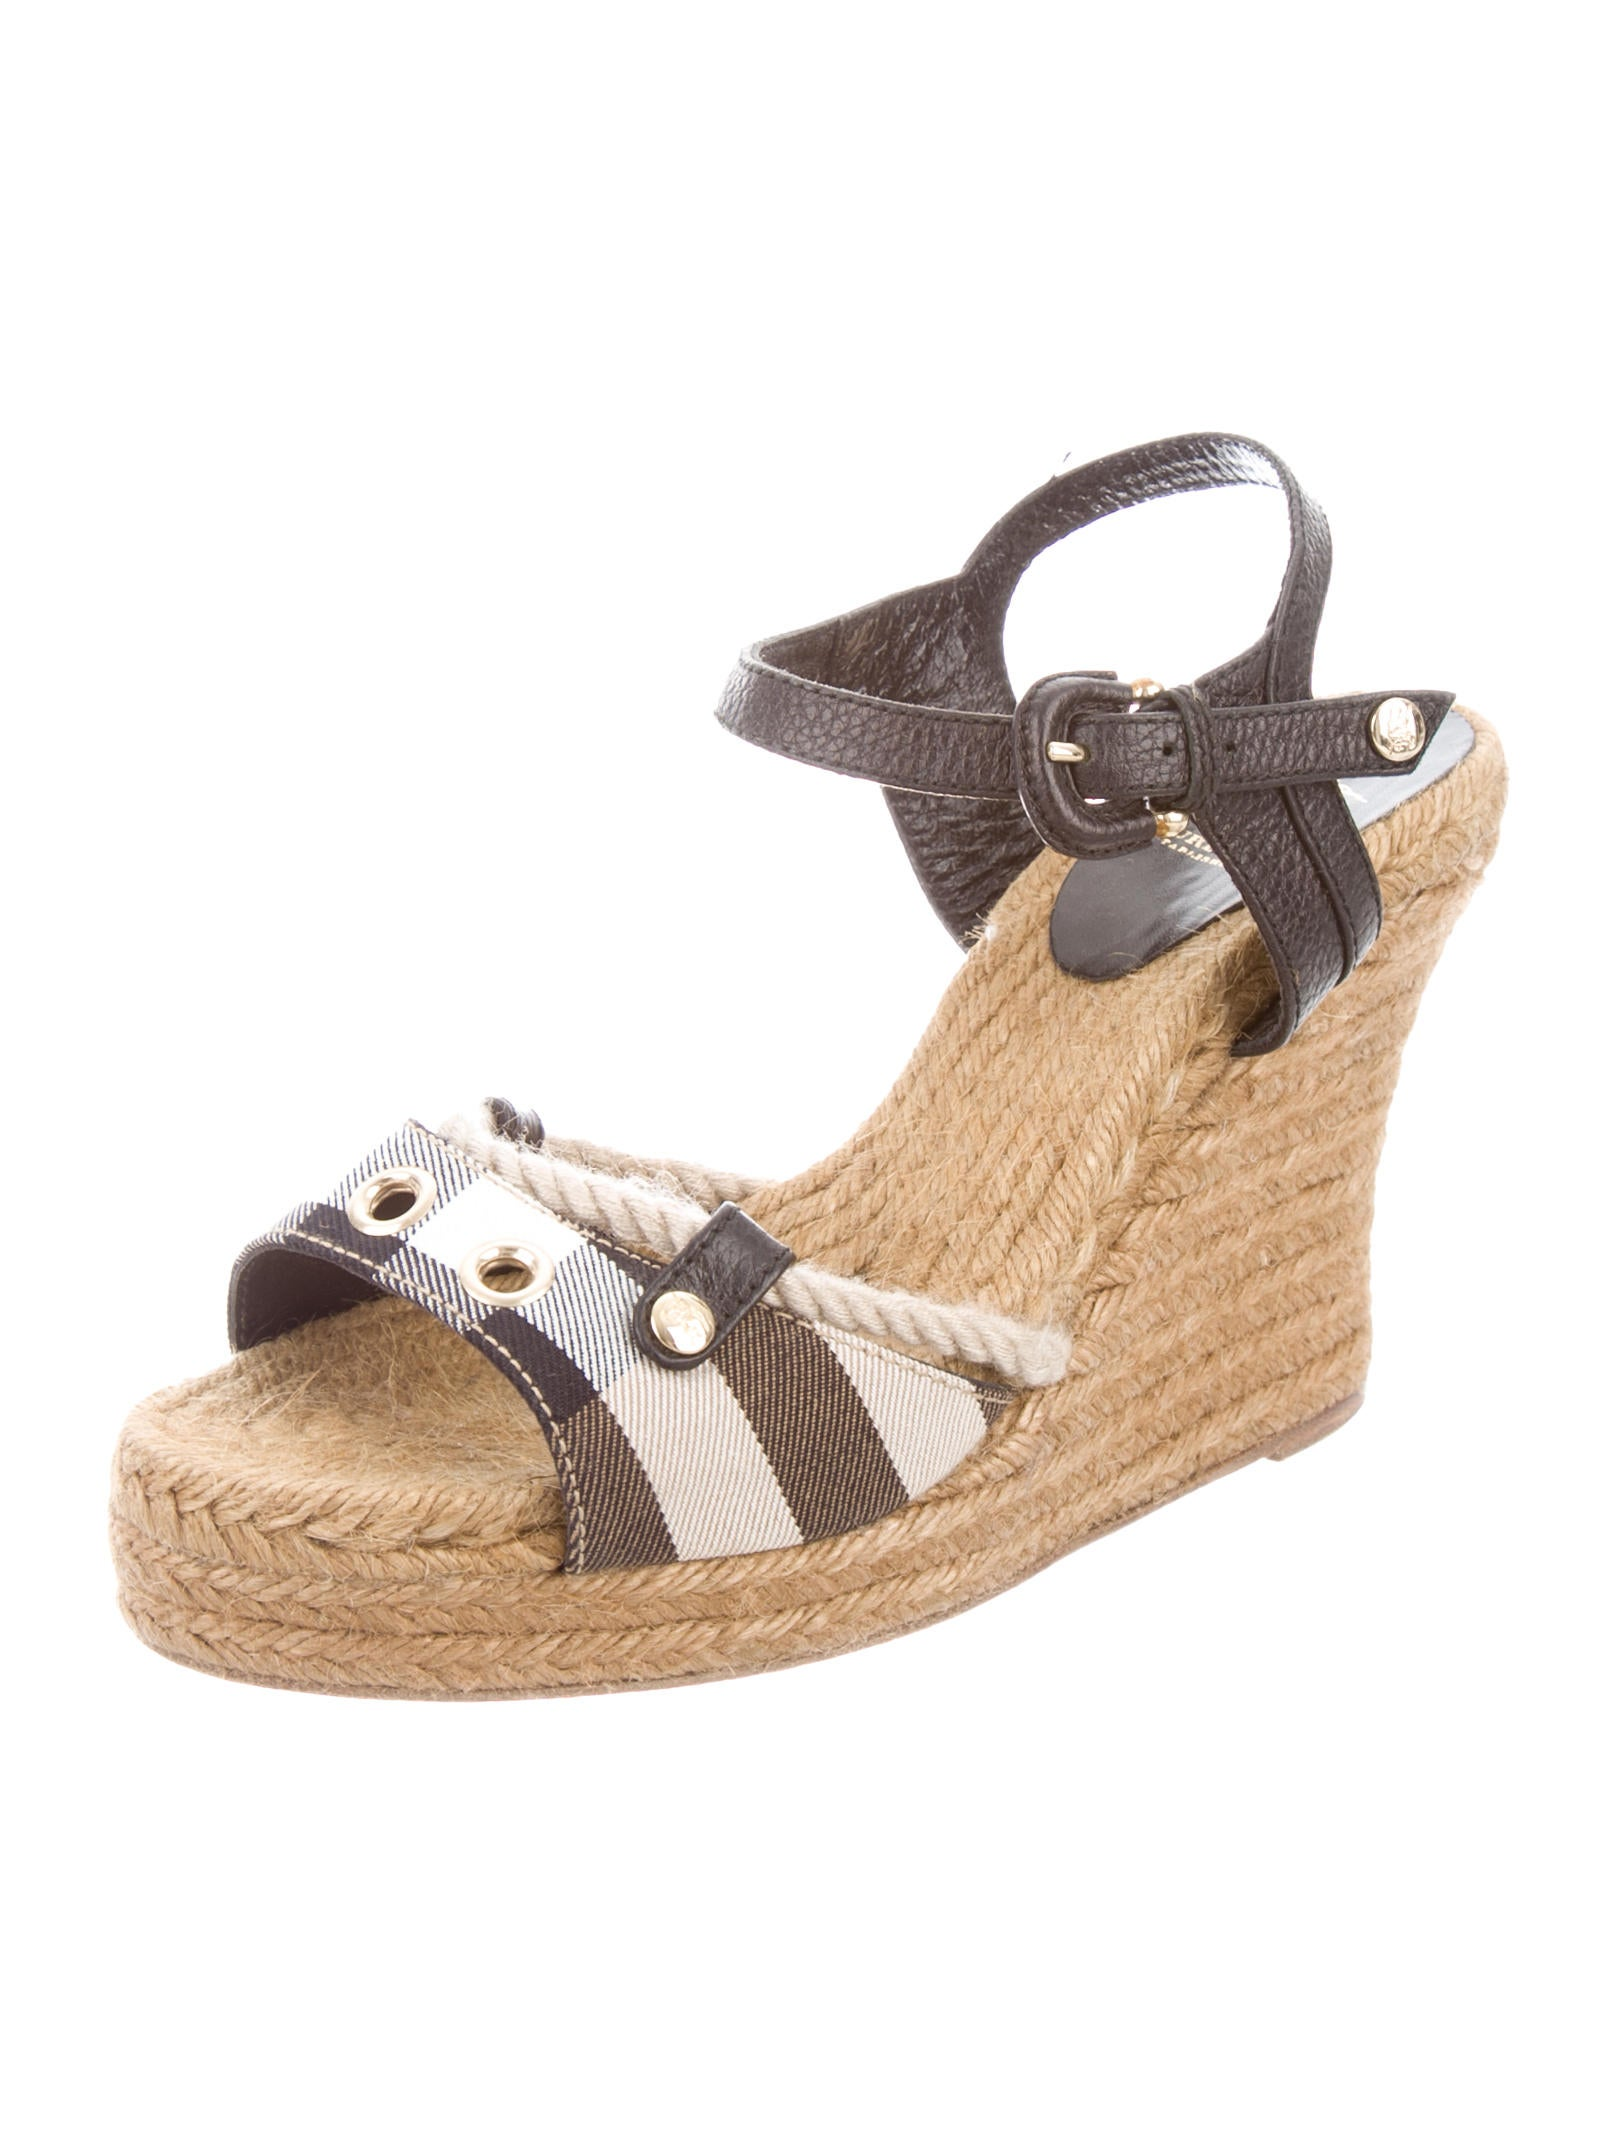 burberry check platform wedge sandals shoes